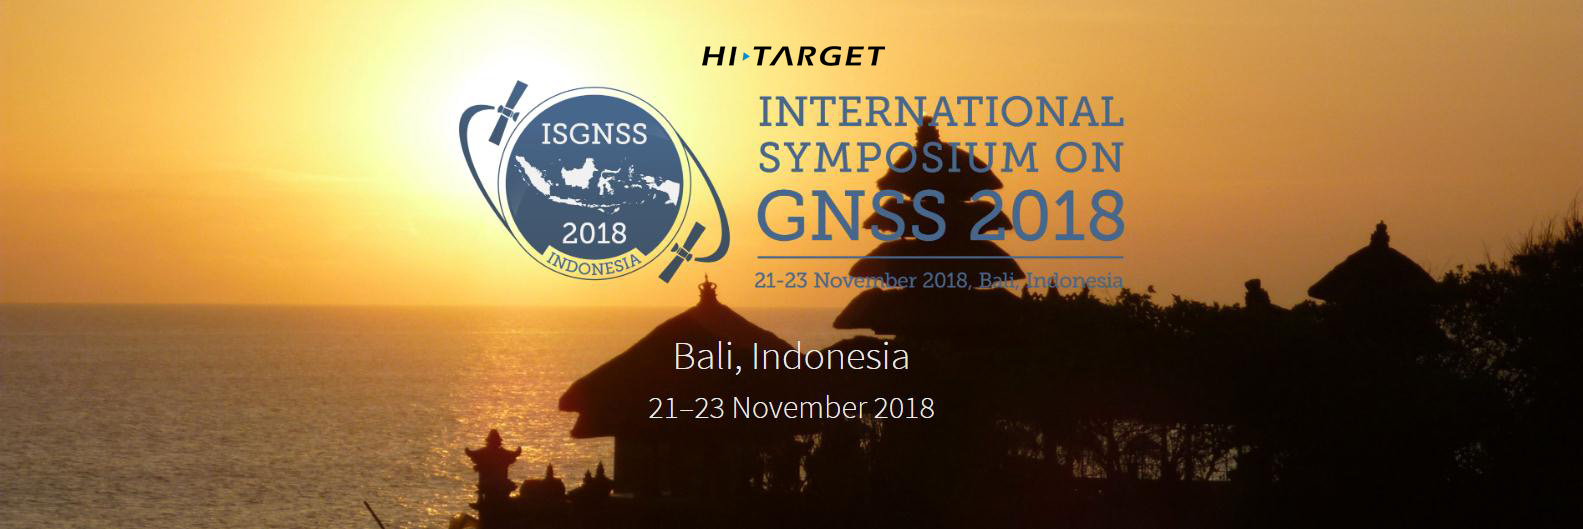 20181116040750398 - ISGNSS 2018 Will Take Place in Bali